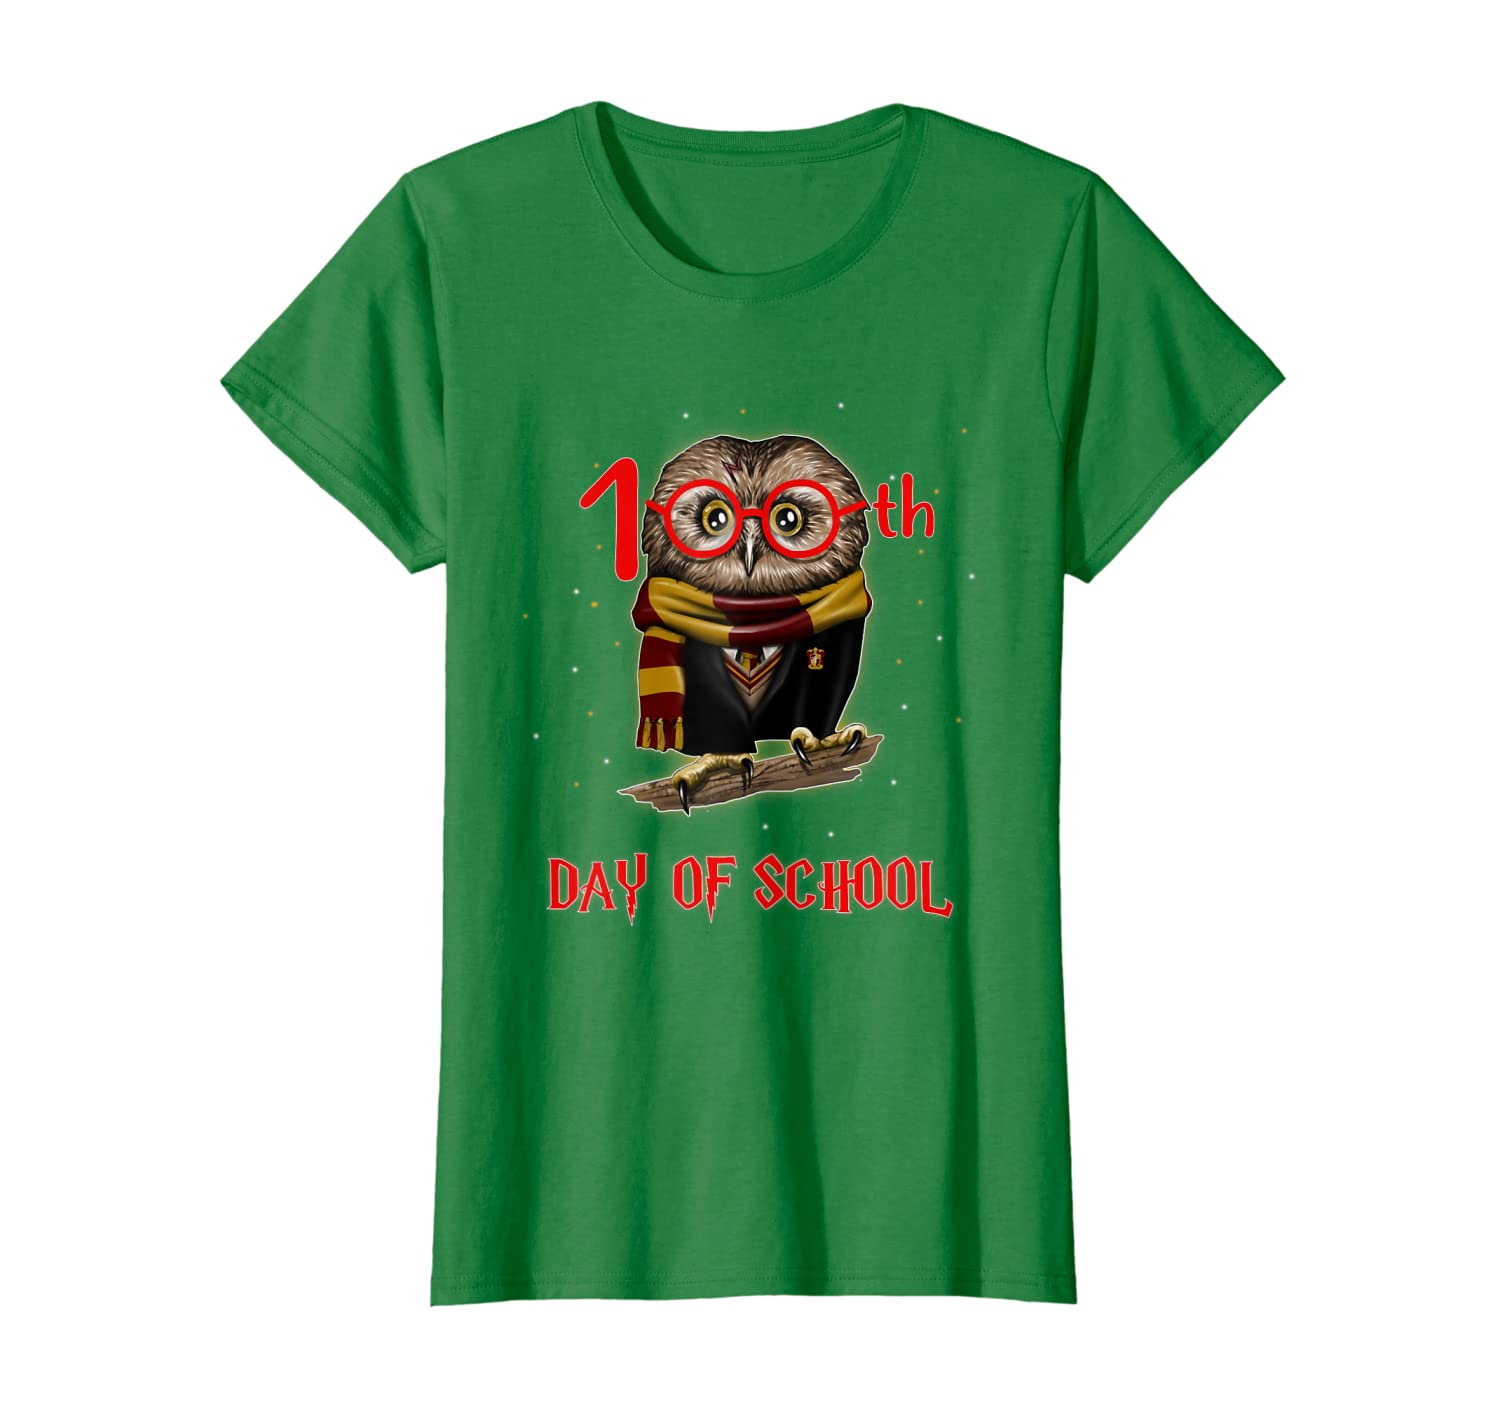 100th Day of School Owl Shirt Teacher Student Kids Gift T-Shirt Unisex Tshirt